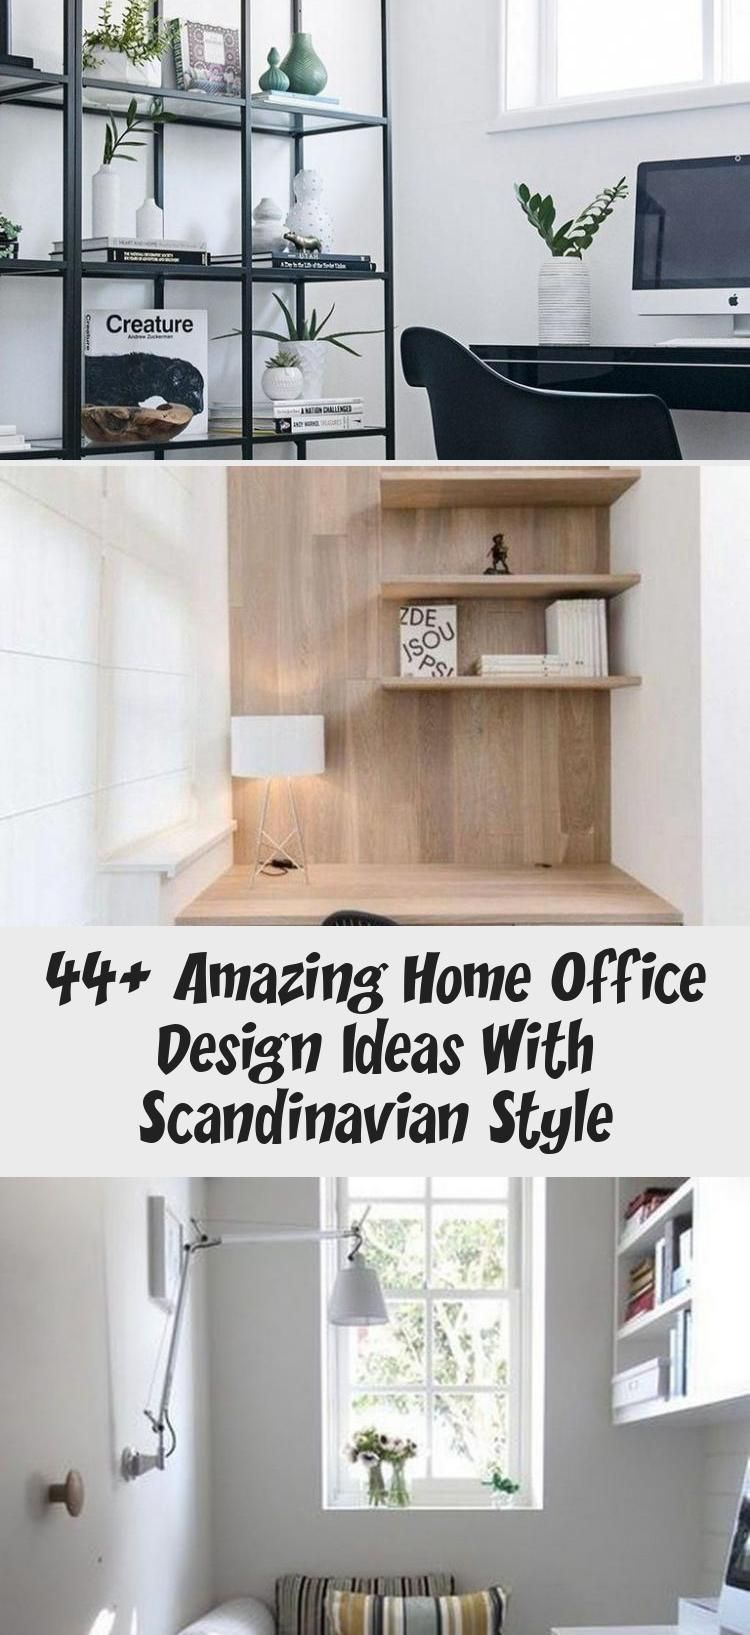 44 Amazing Home Office Design Ideas With Scandinavian Style Ideas In 2020 Home Office Scandinavian Style Design